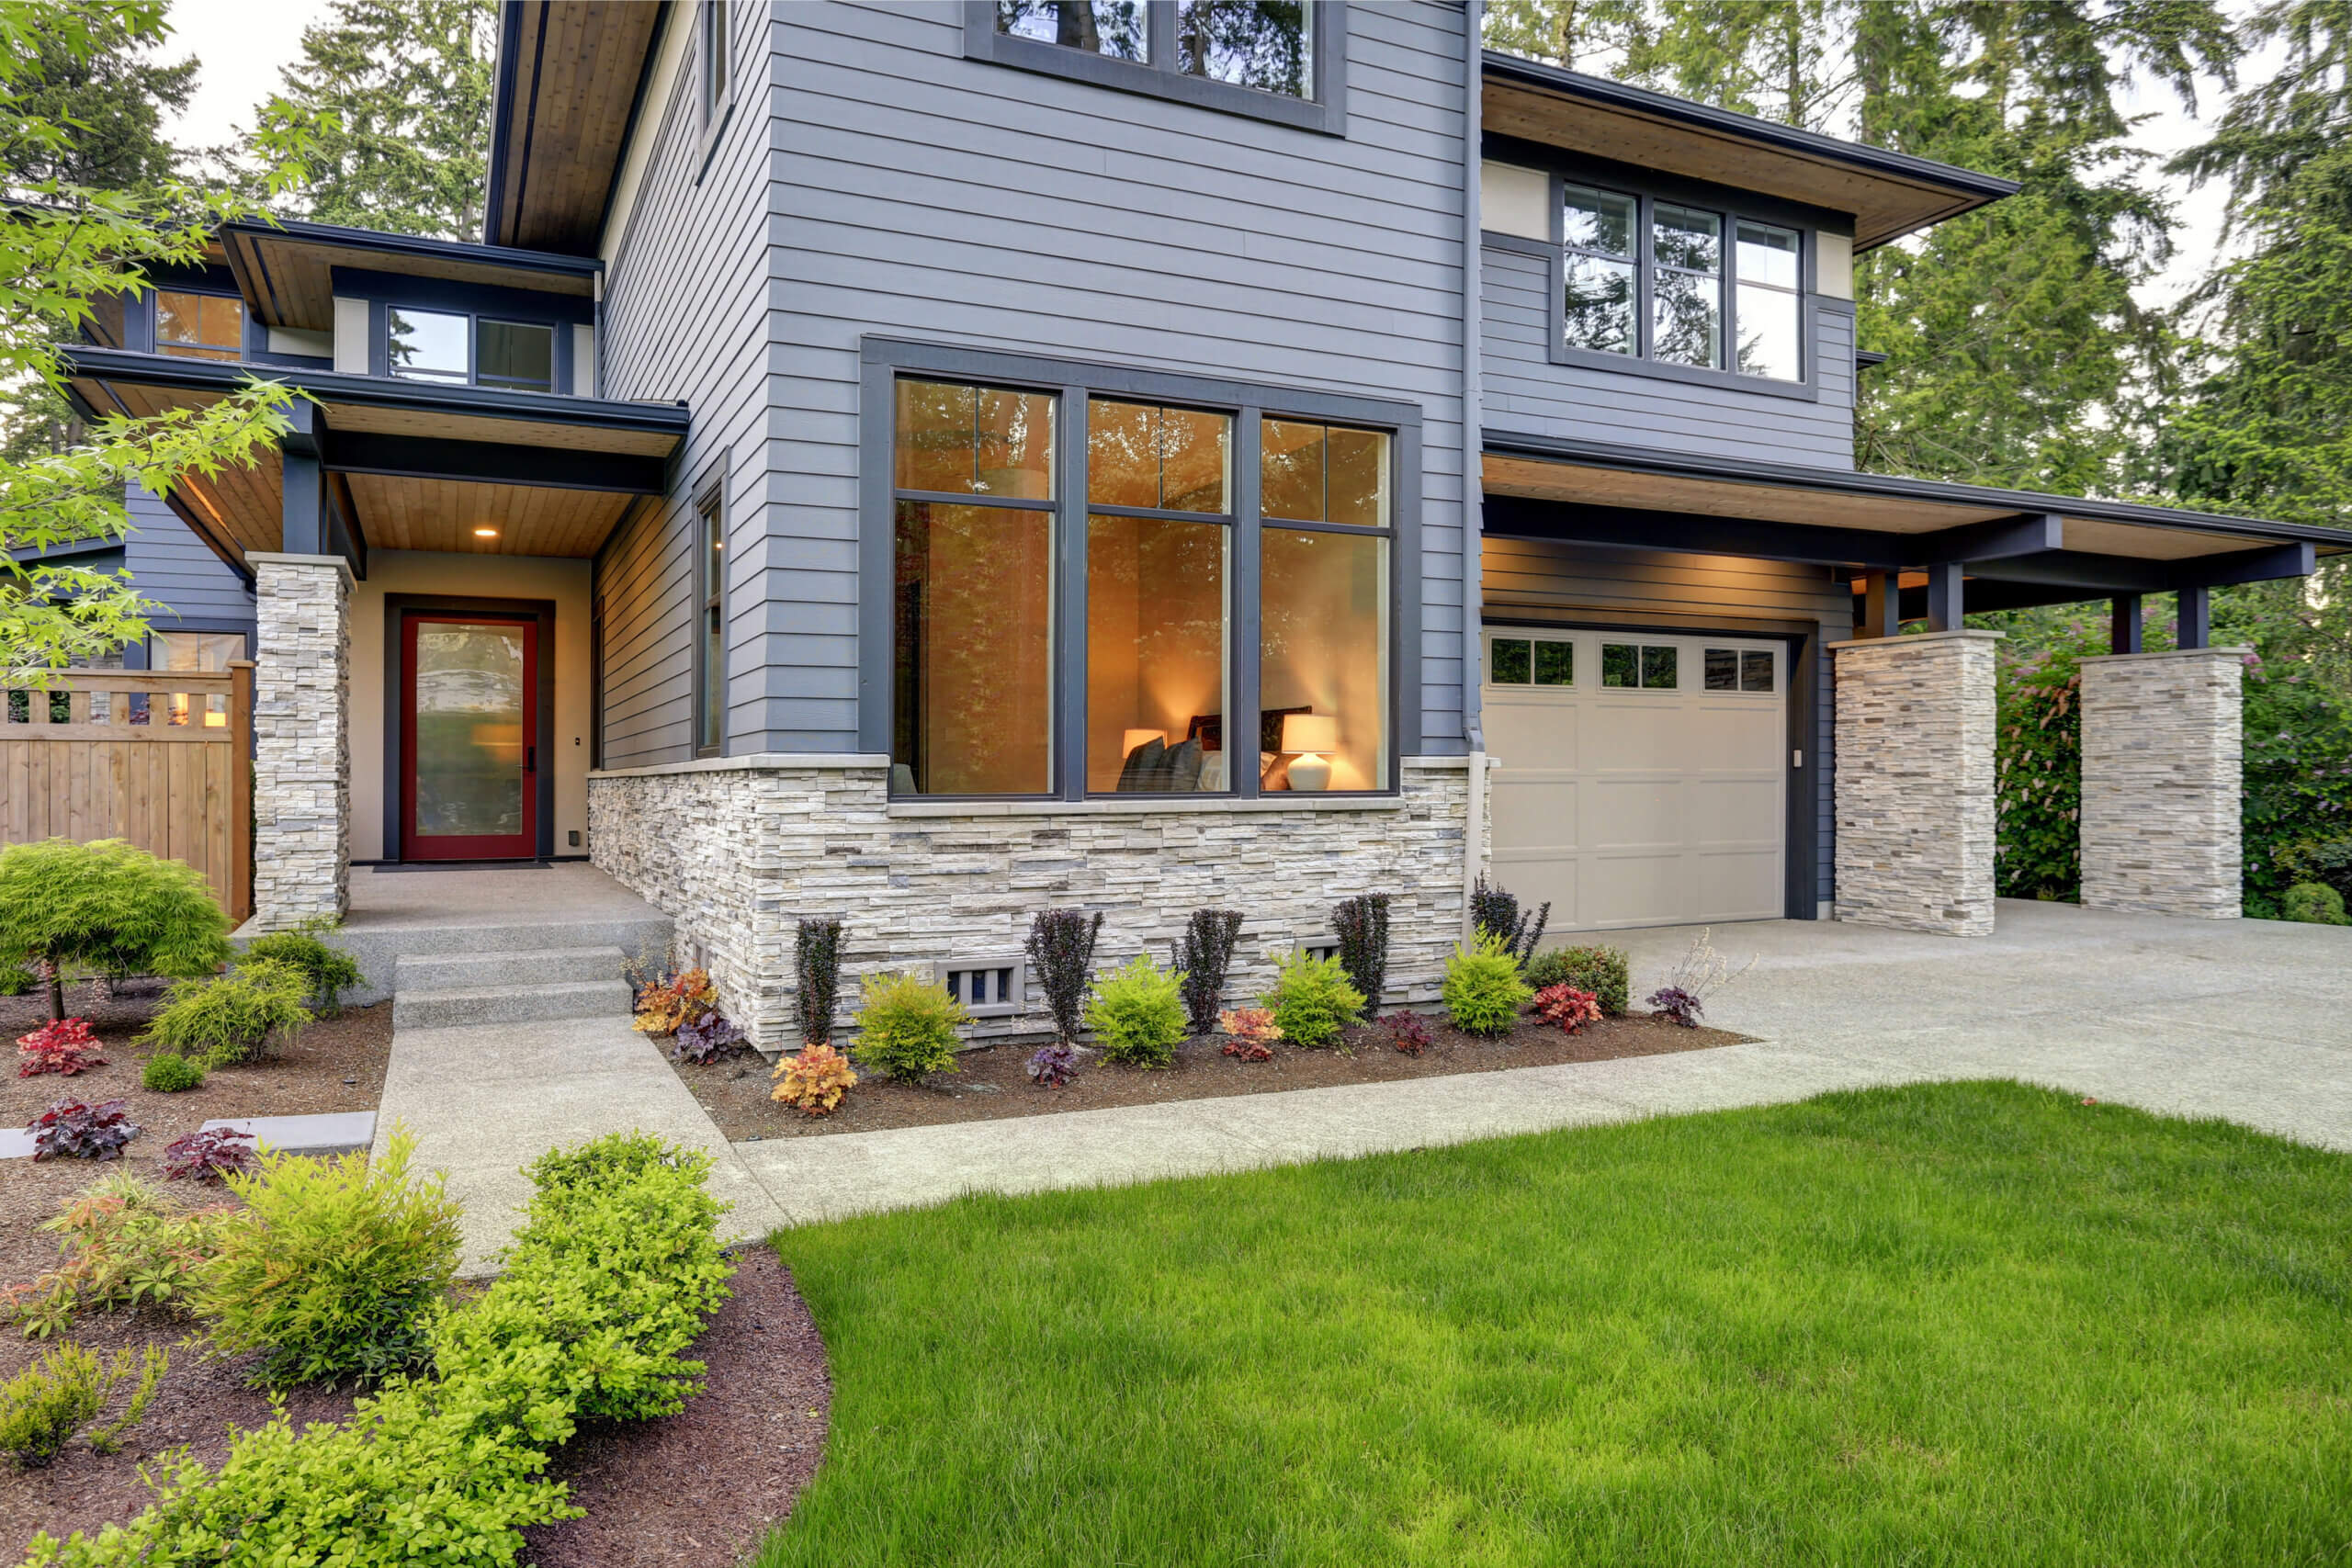 Luxurious new home with curb appeal. Trendy grey two-story exterior in Bellevue with large picture windows, stone foundation veneer, covered porch and concrete pathway. Northwest, USA